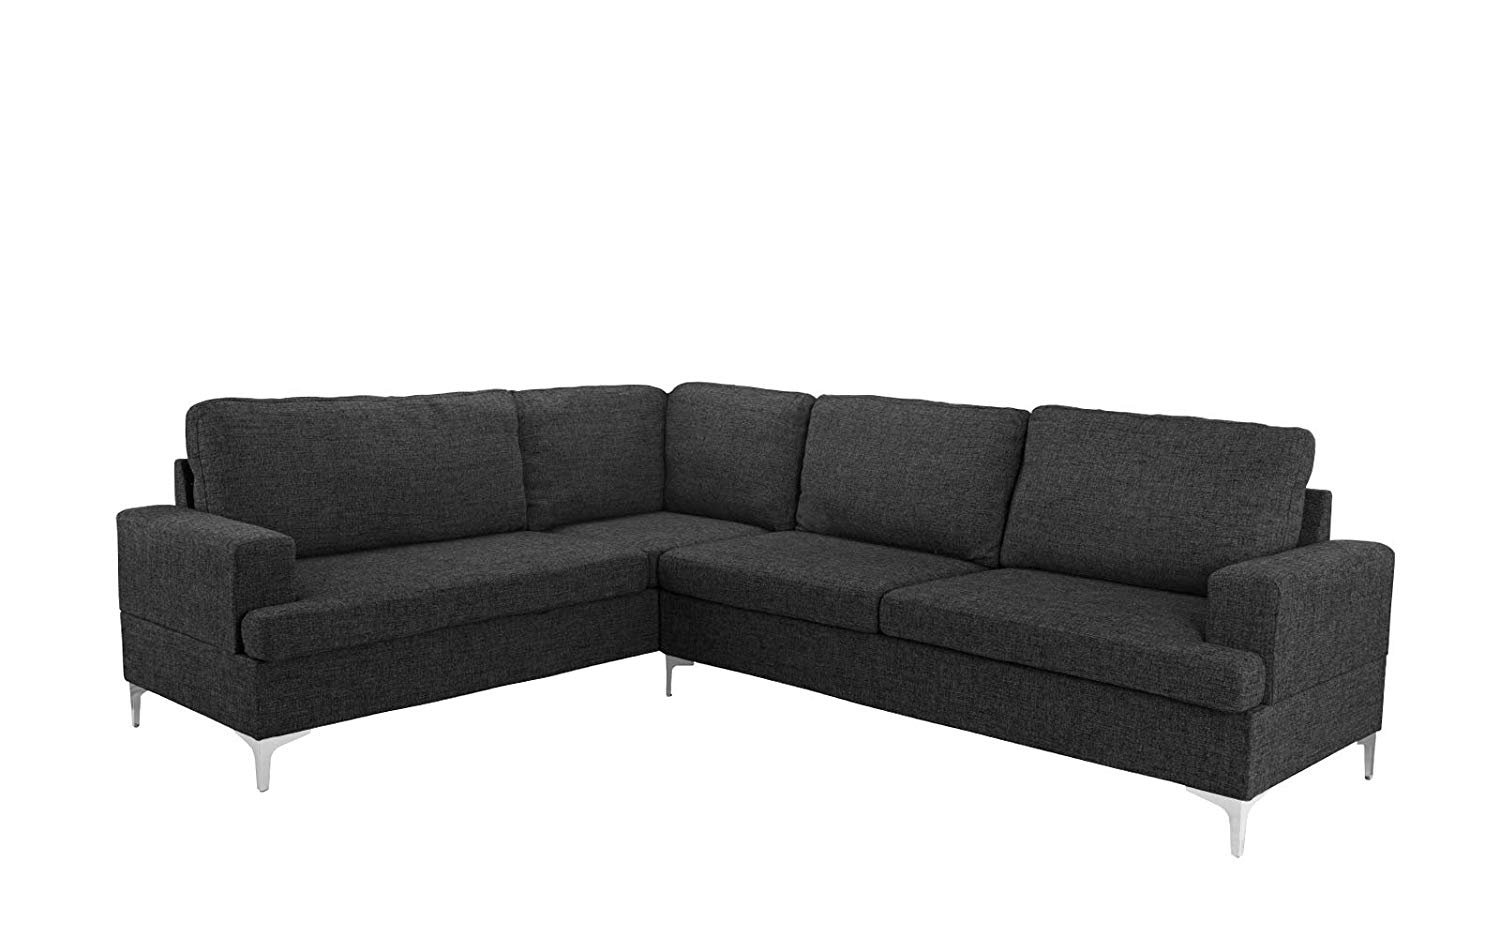 Details about Family Room Sectional Sofa Classic Living Room L-Shape Couch,  Linen (Dark Grey)